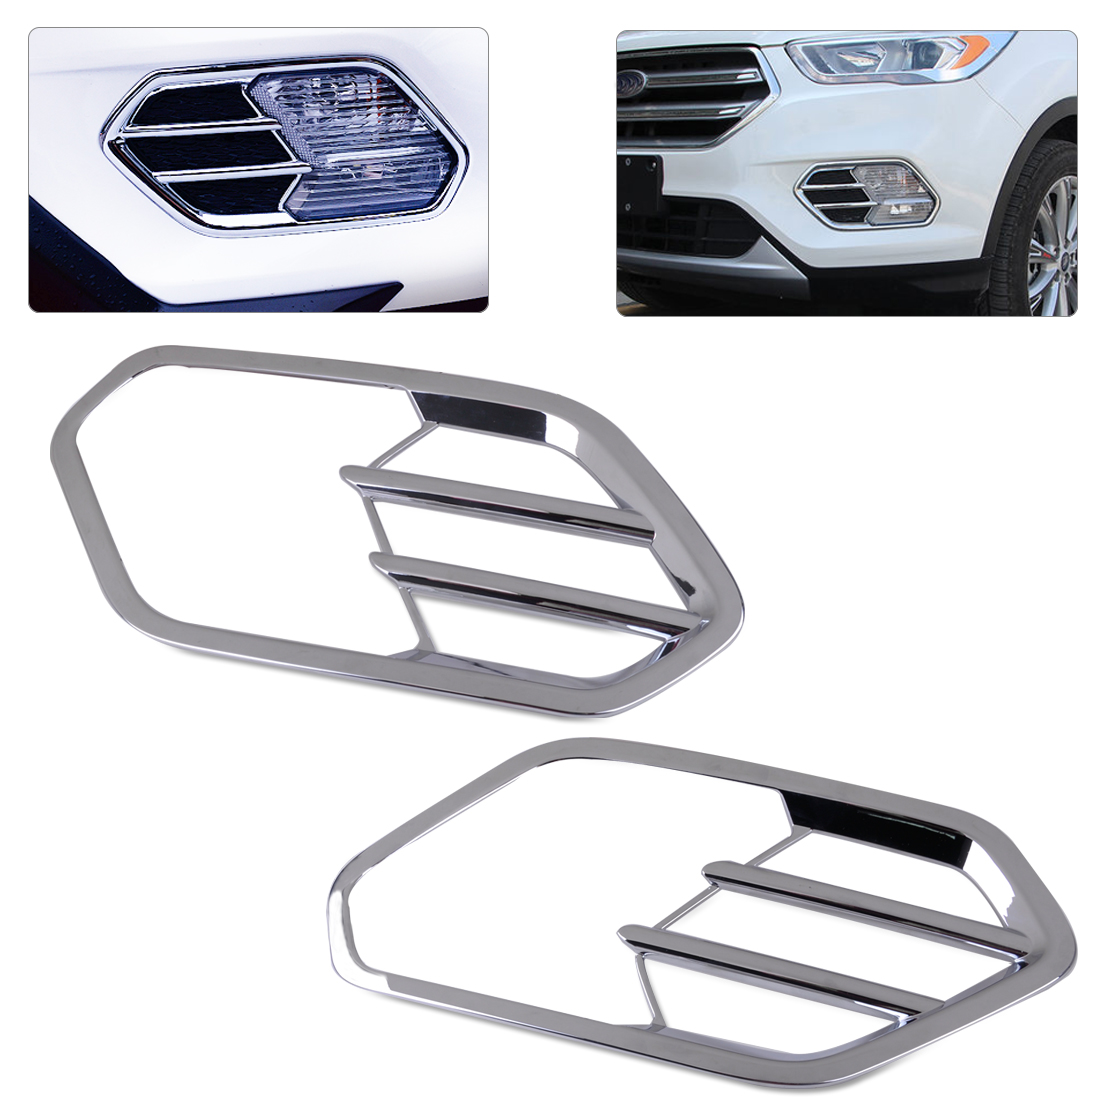 Citall 2 pcs car styling abs chrome plated front fog light lamp cover trim fit for ford escape kuga 2017